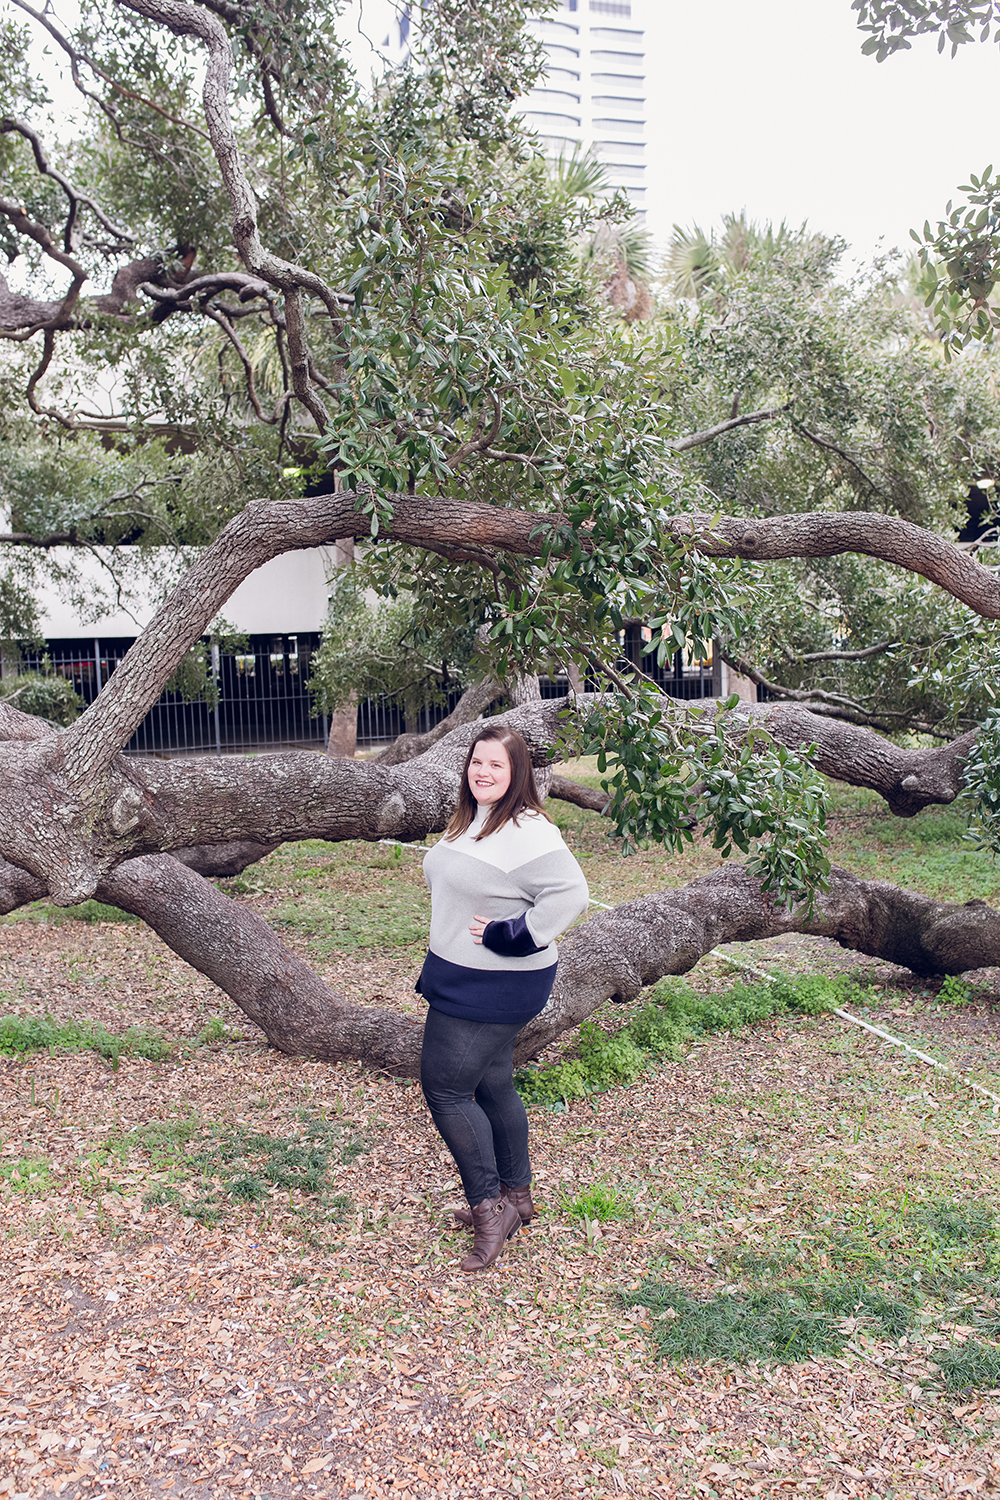 Cool spots for photos in Jacksonville | The Treaty Oak